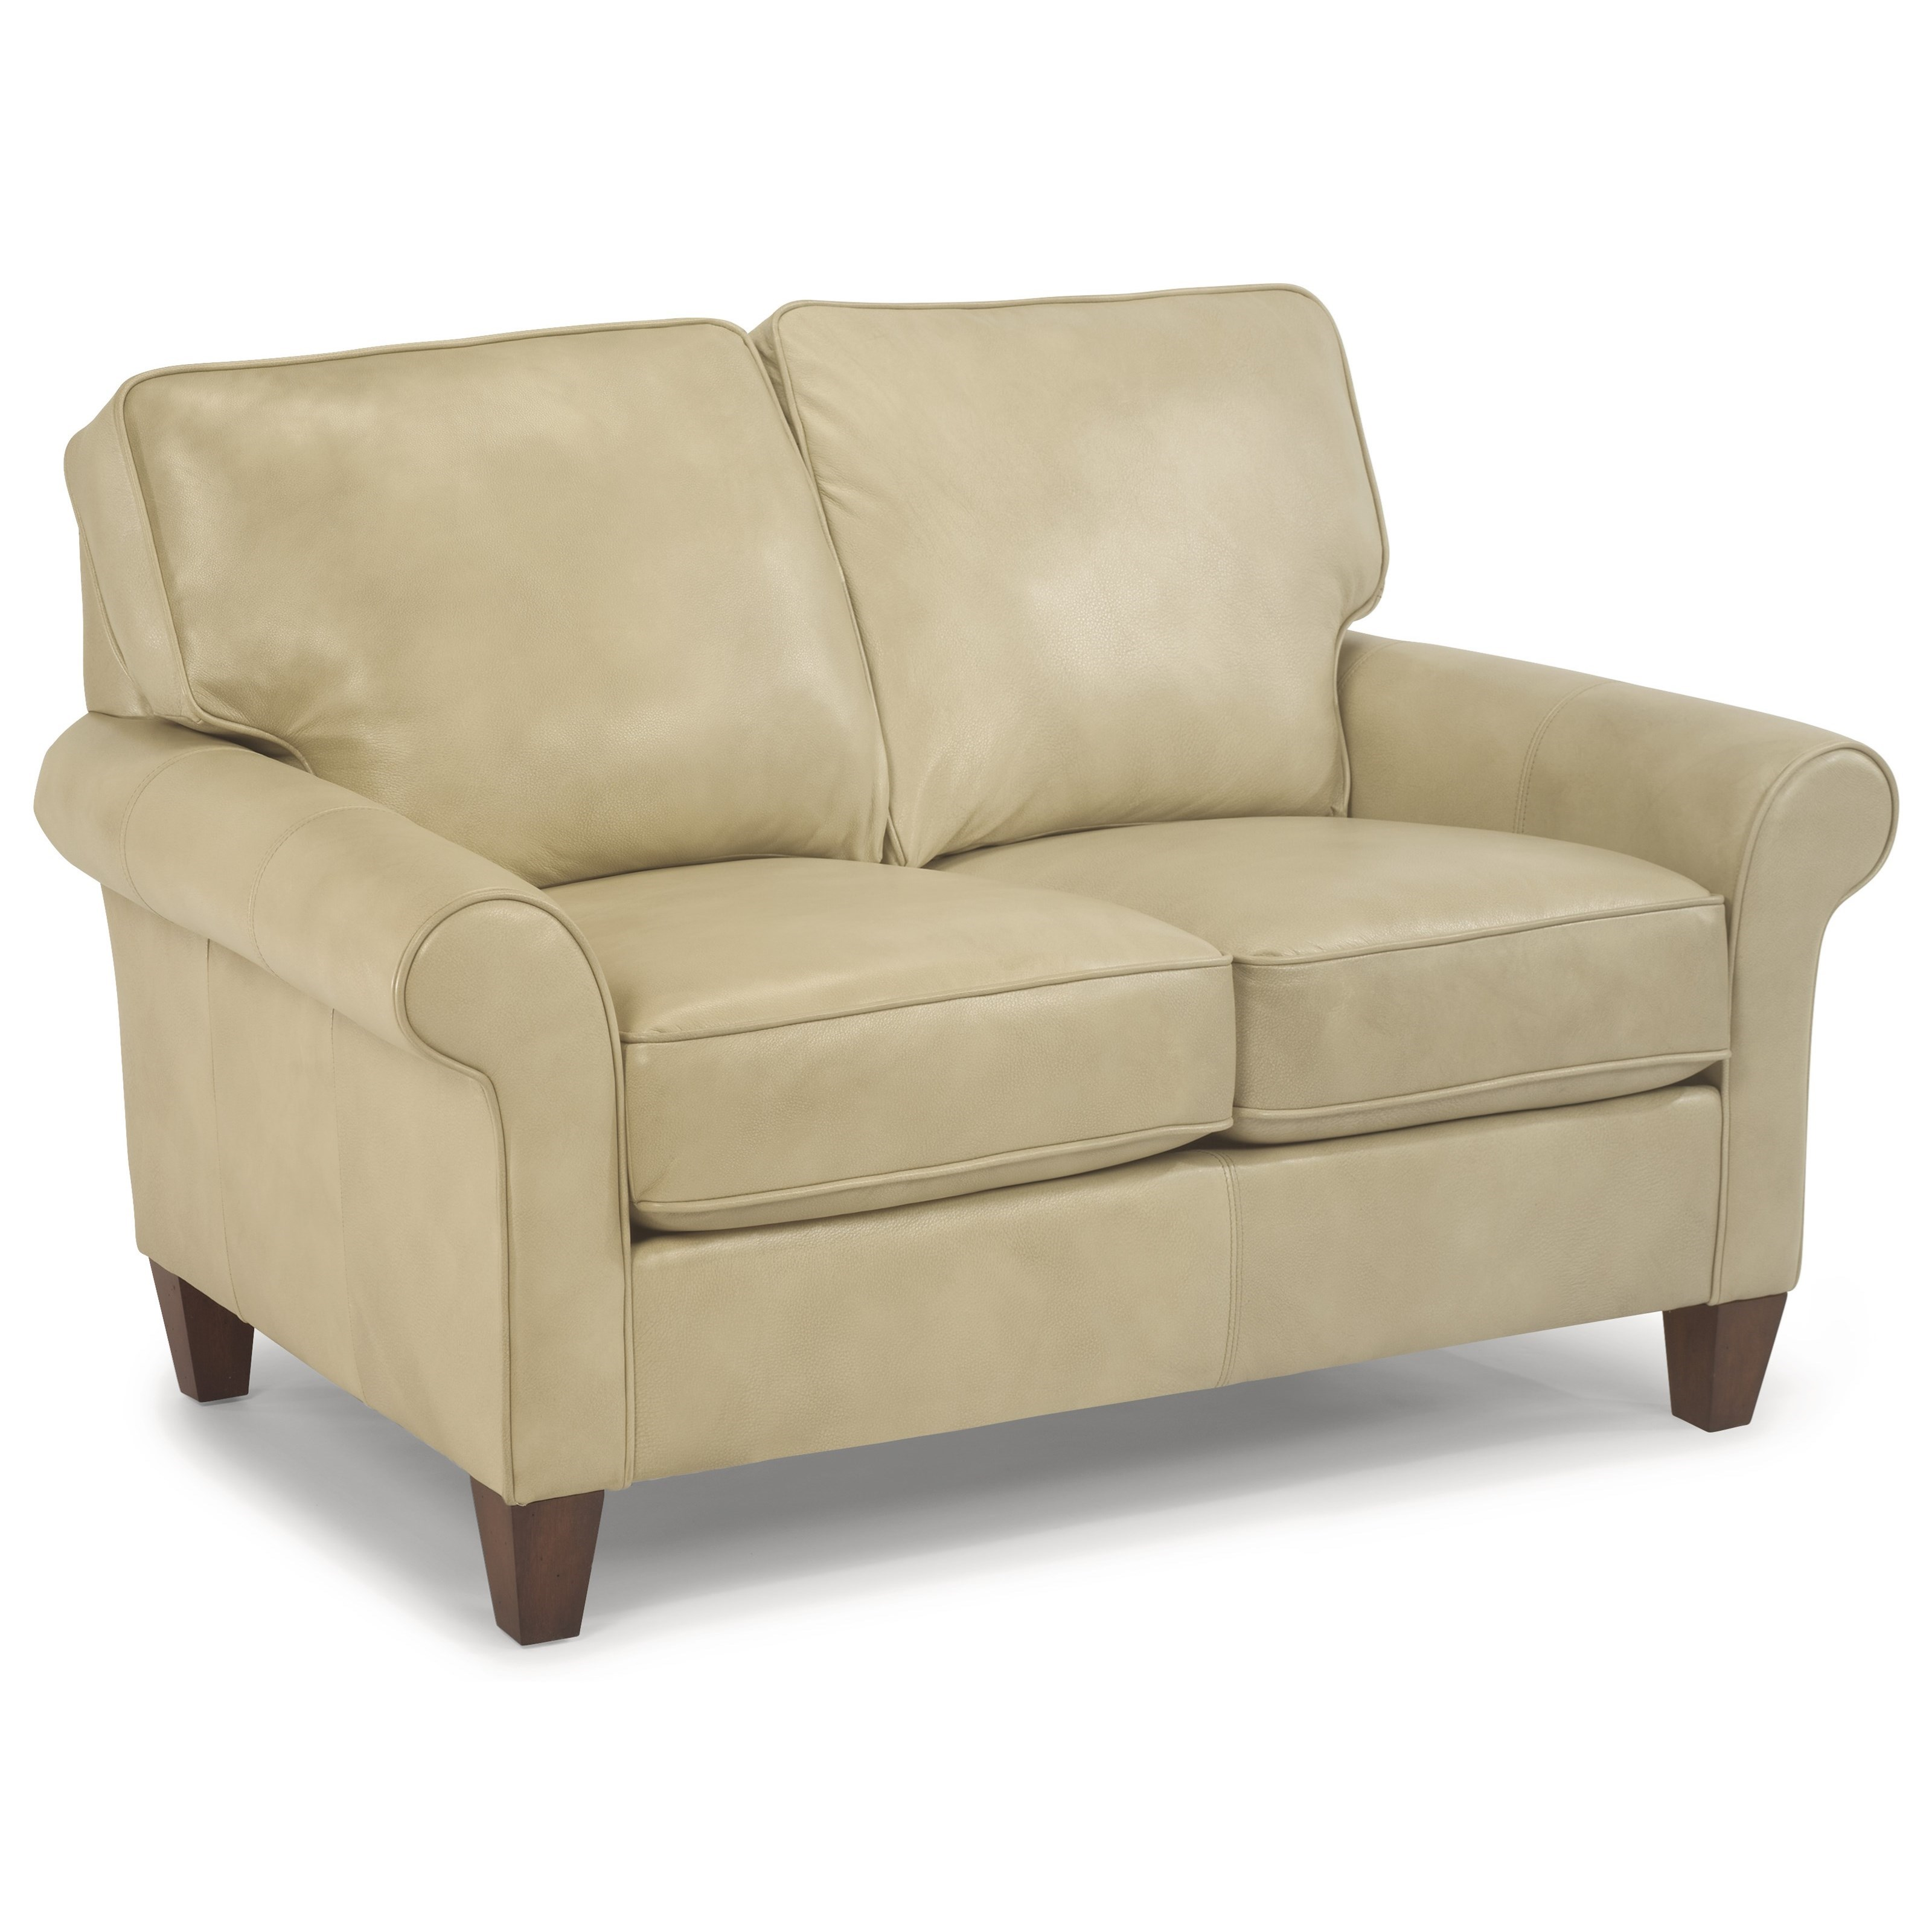 Fine Westside Casual Style Loveseat By Flexsteel At Dunk Bright Furniture Uwap Interior Chair Design Uwaporg